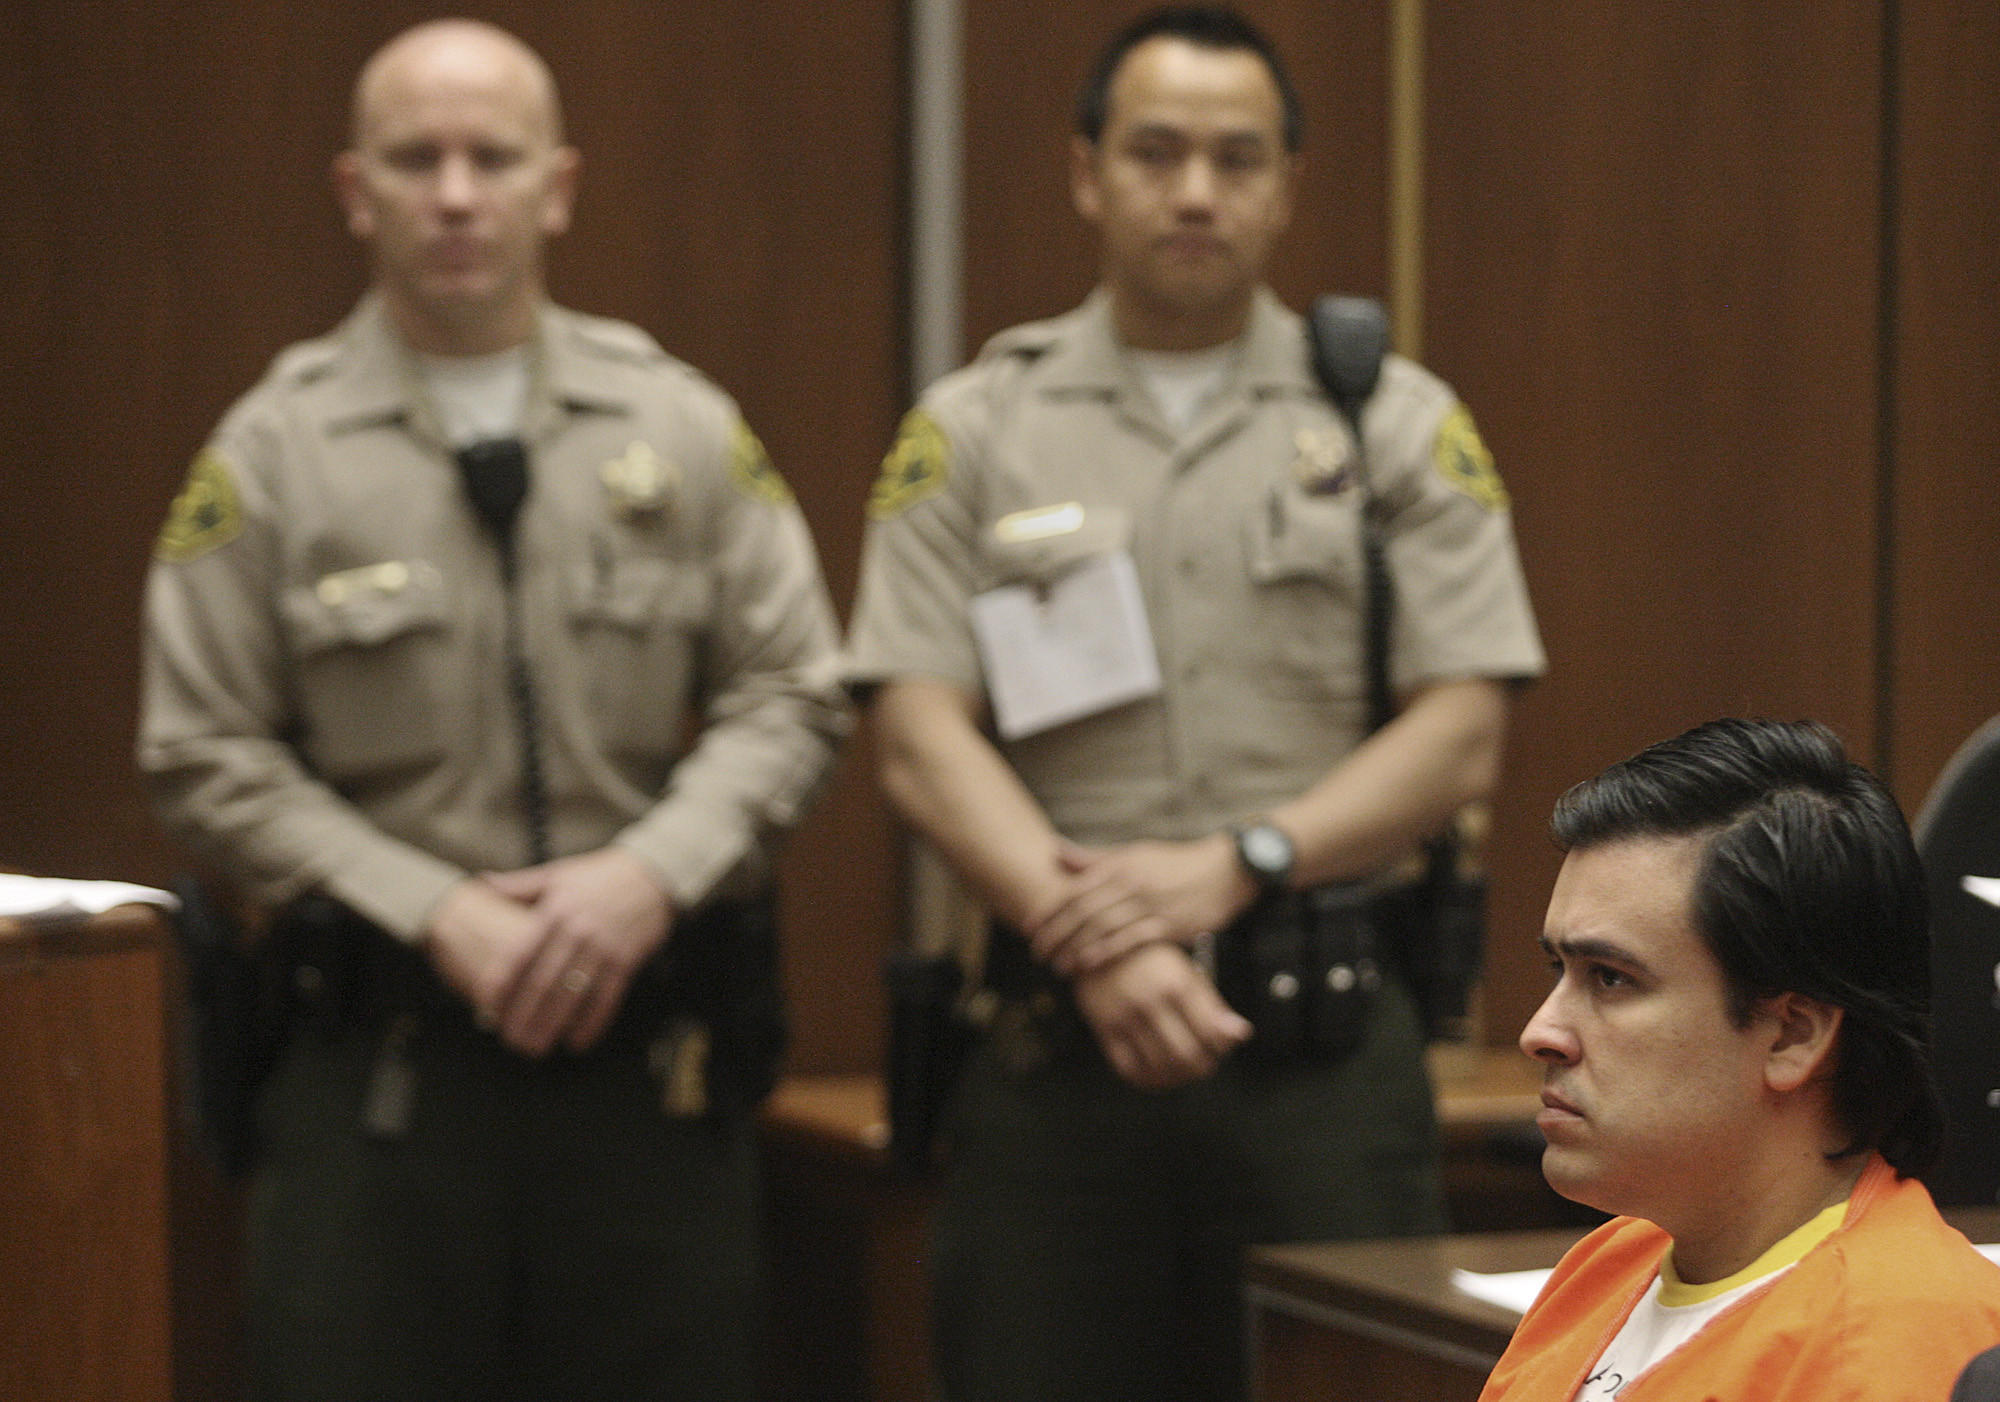 Jose Rigoberto Sanchez, former Los Angeles County sheriff's deputy, was sentenced Friday to nine years in state prison.